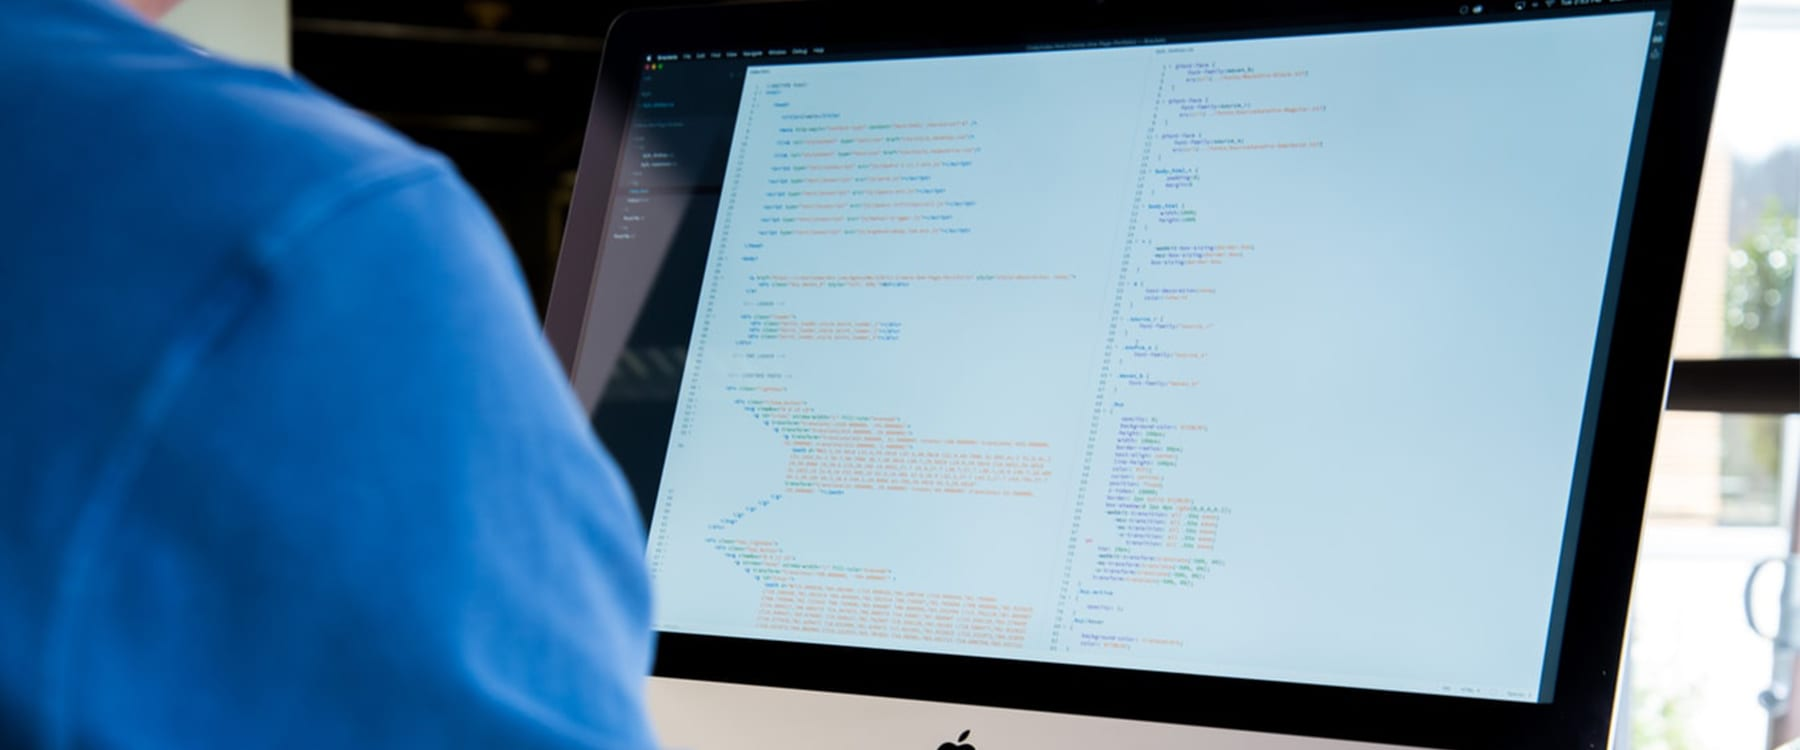 7 Reasons Why a HTML Sitemap Is a Must-Have Image